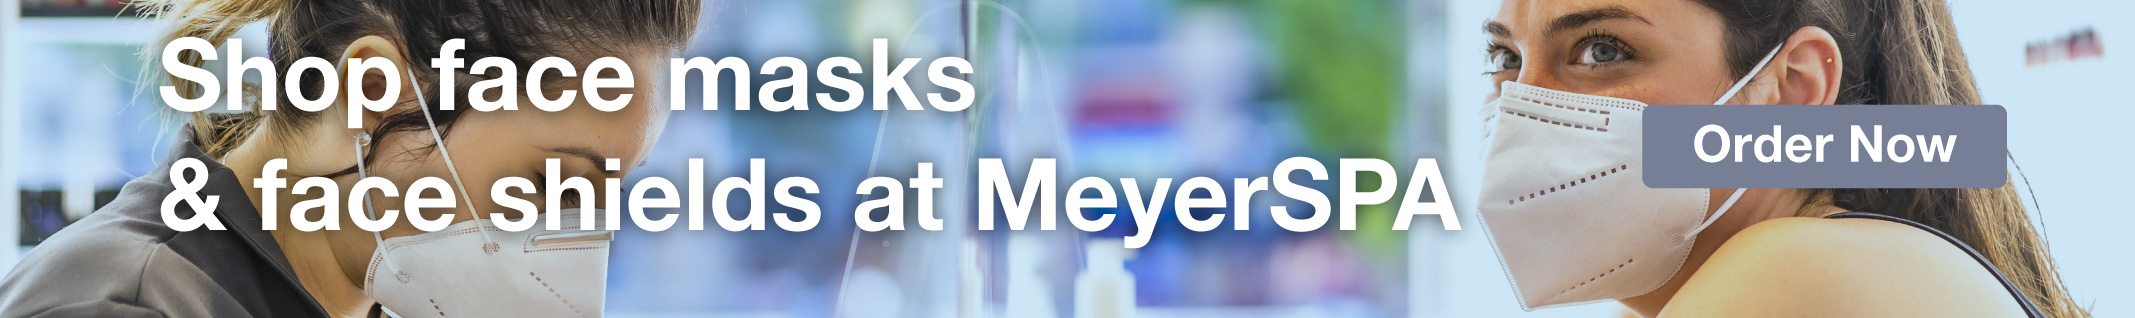 Full Page Banner Ad – Shop Face Masks & Face Shields at MeyerSPA – Click to View Page